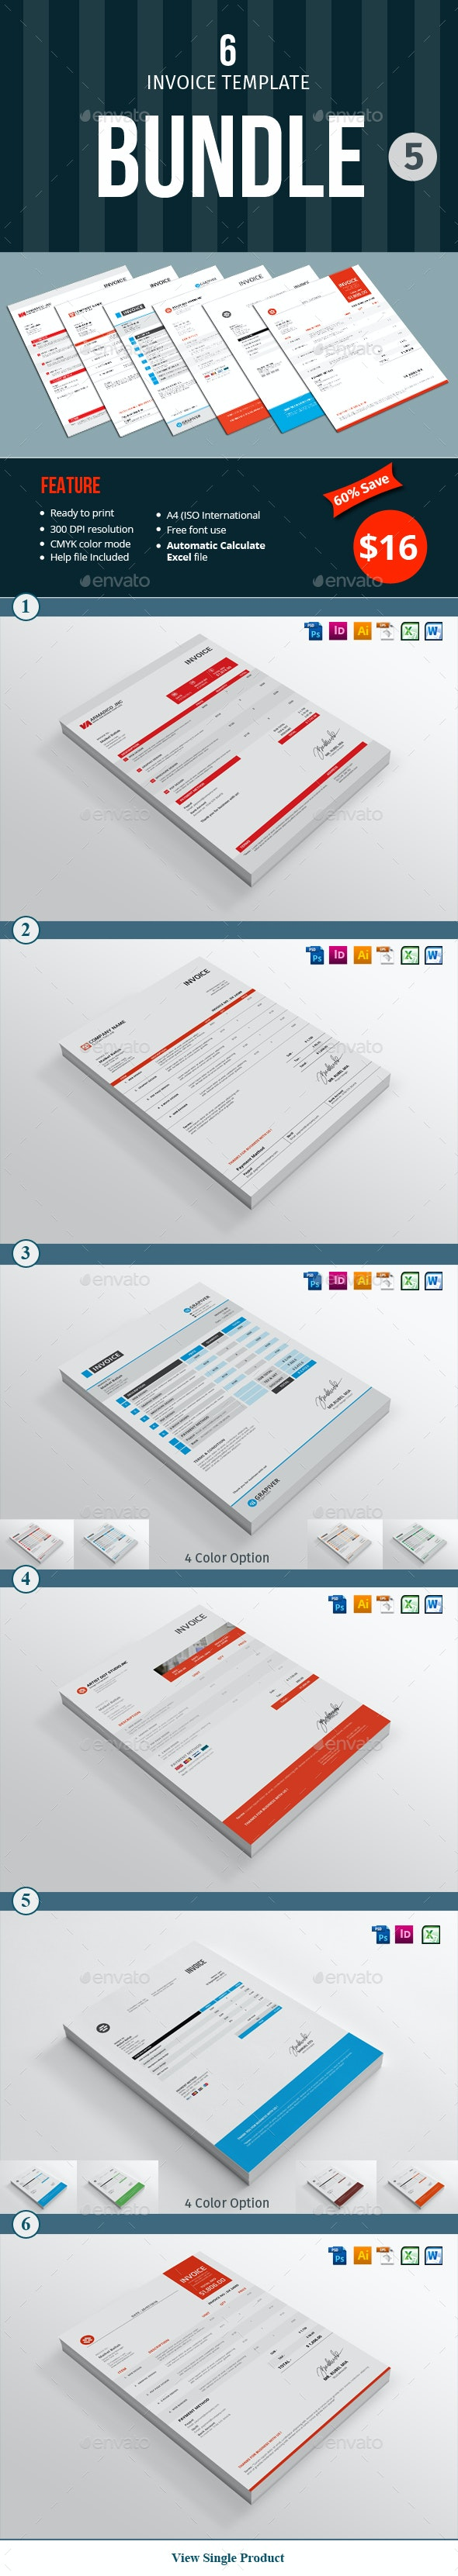 Invoice Template Bundle - 5 - Proposals & Invoices Stationery